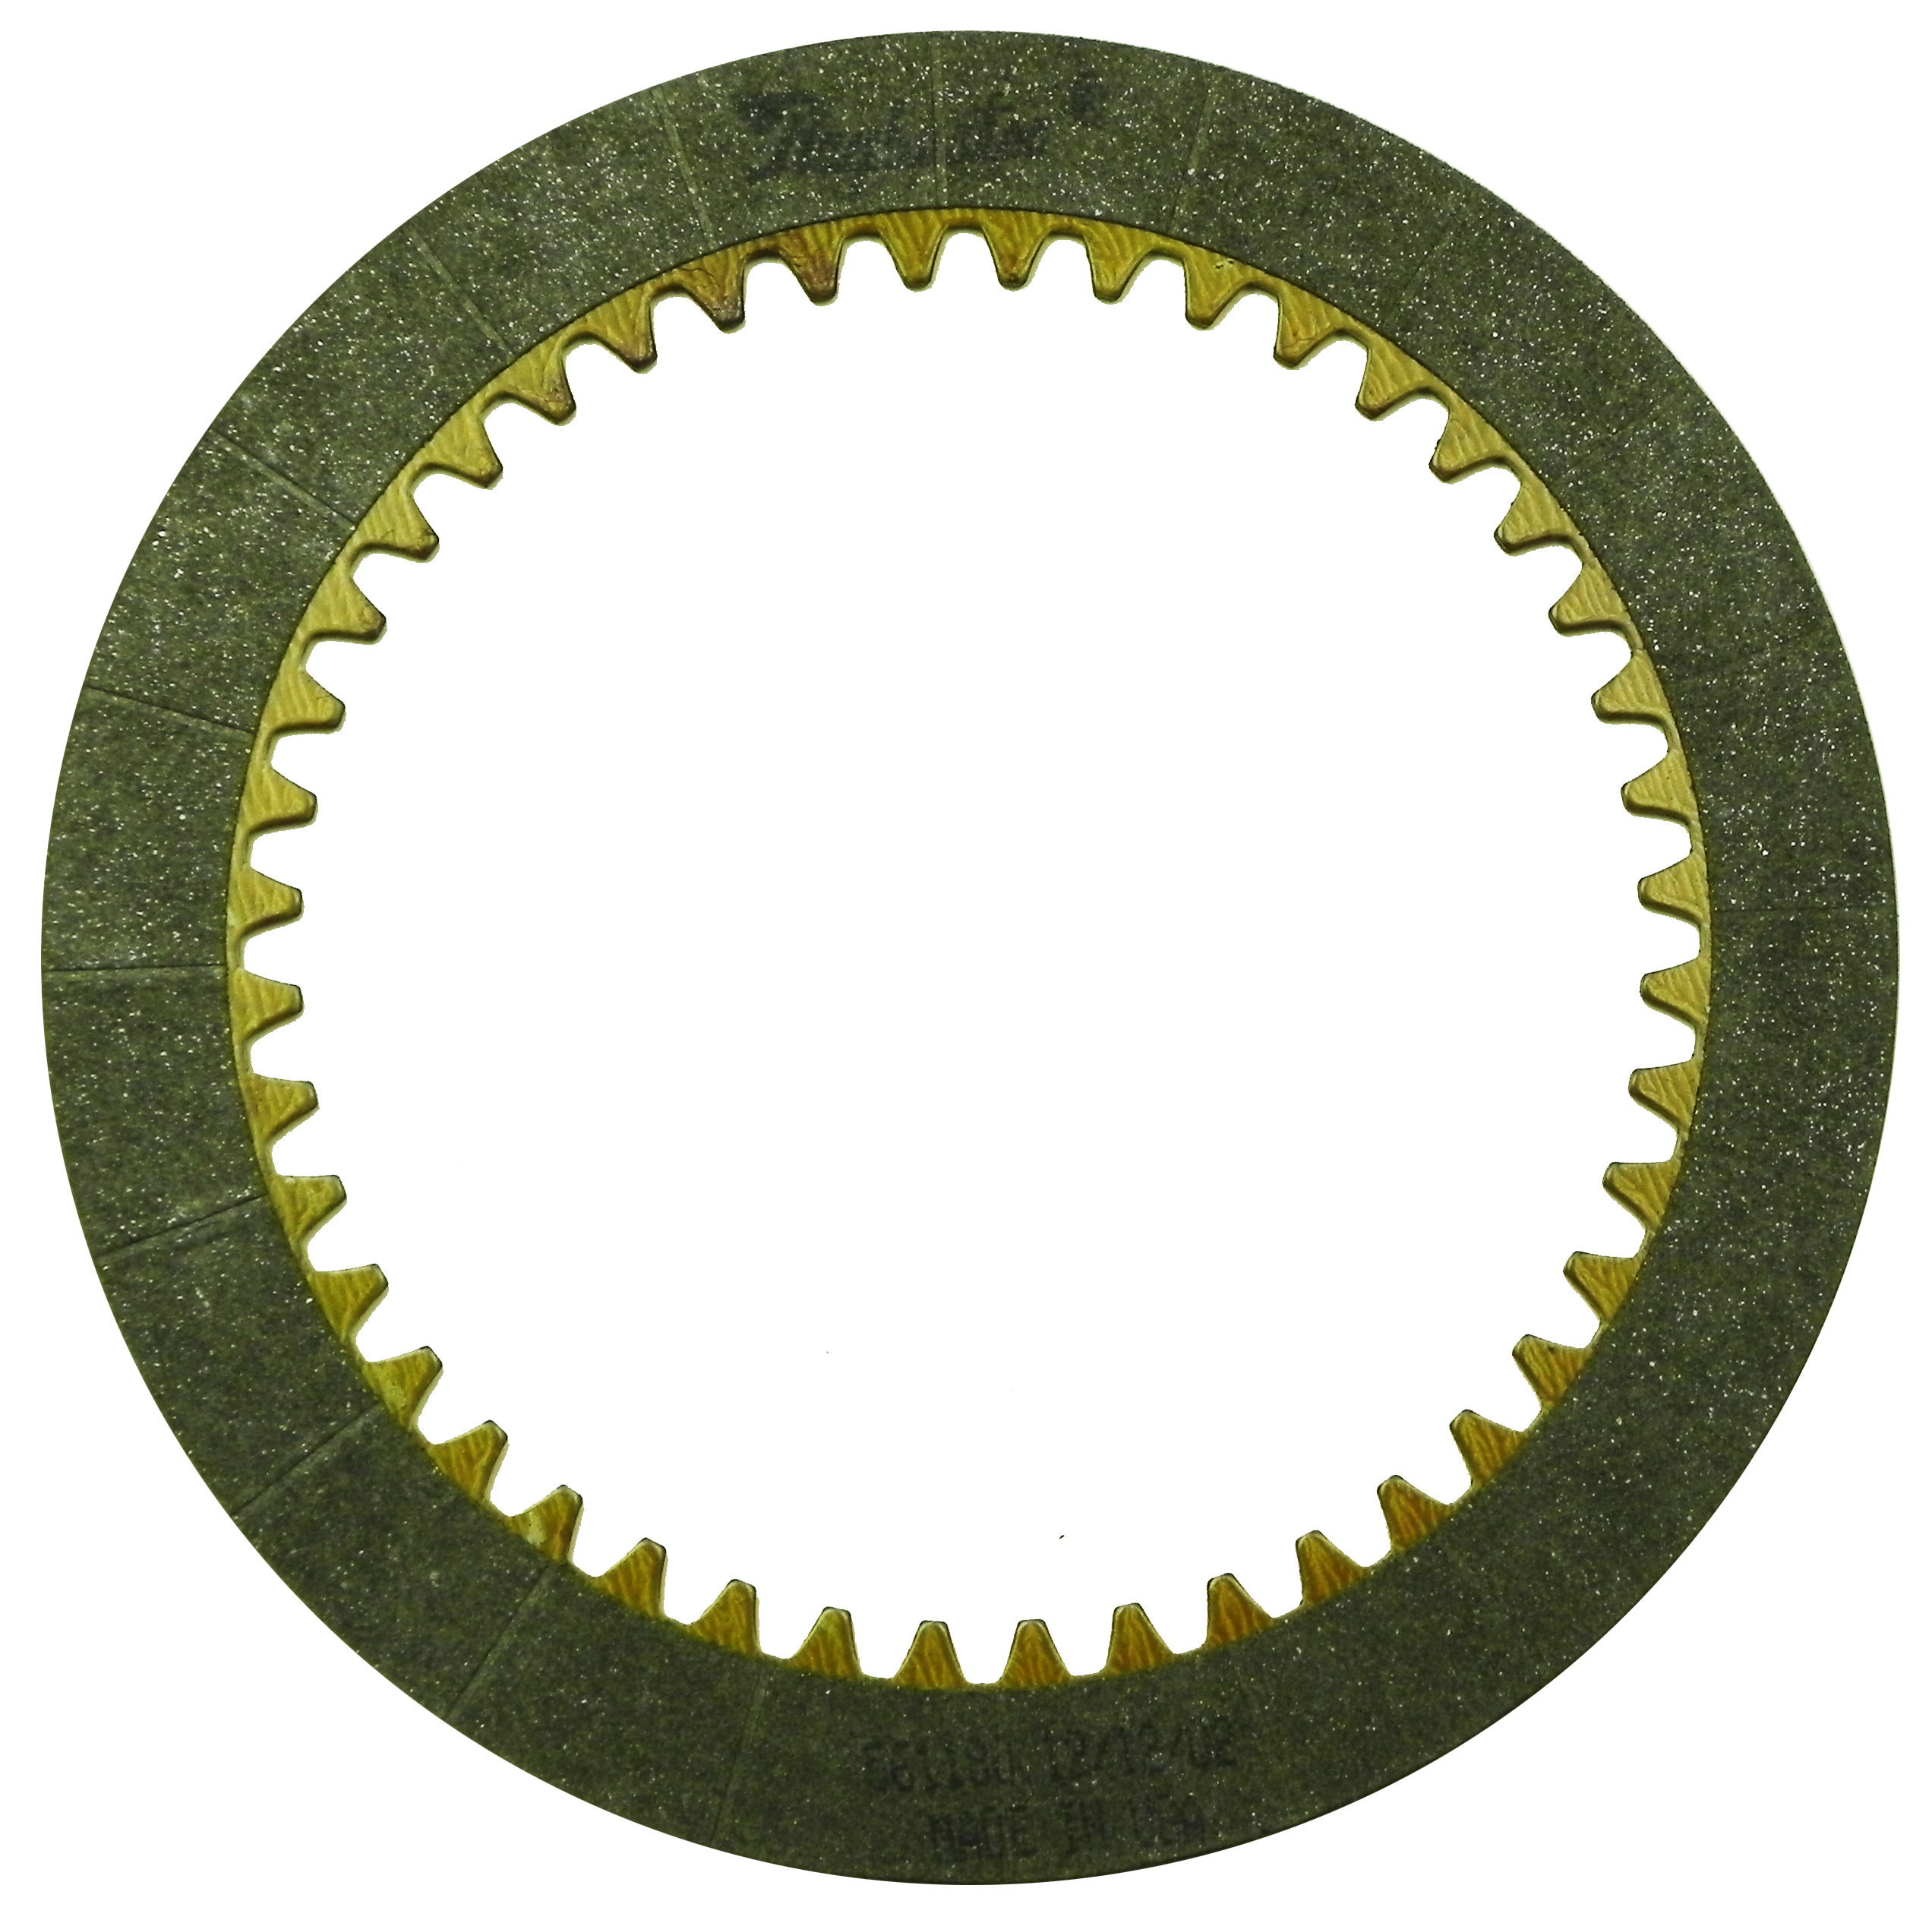 R561200 | 1995-1997 Friction Clutch Plate High Energy Low Hold High Energy